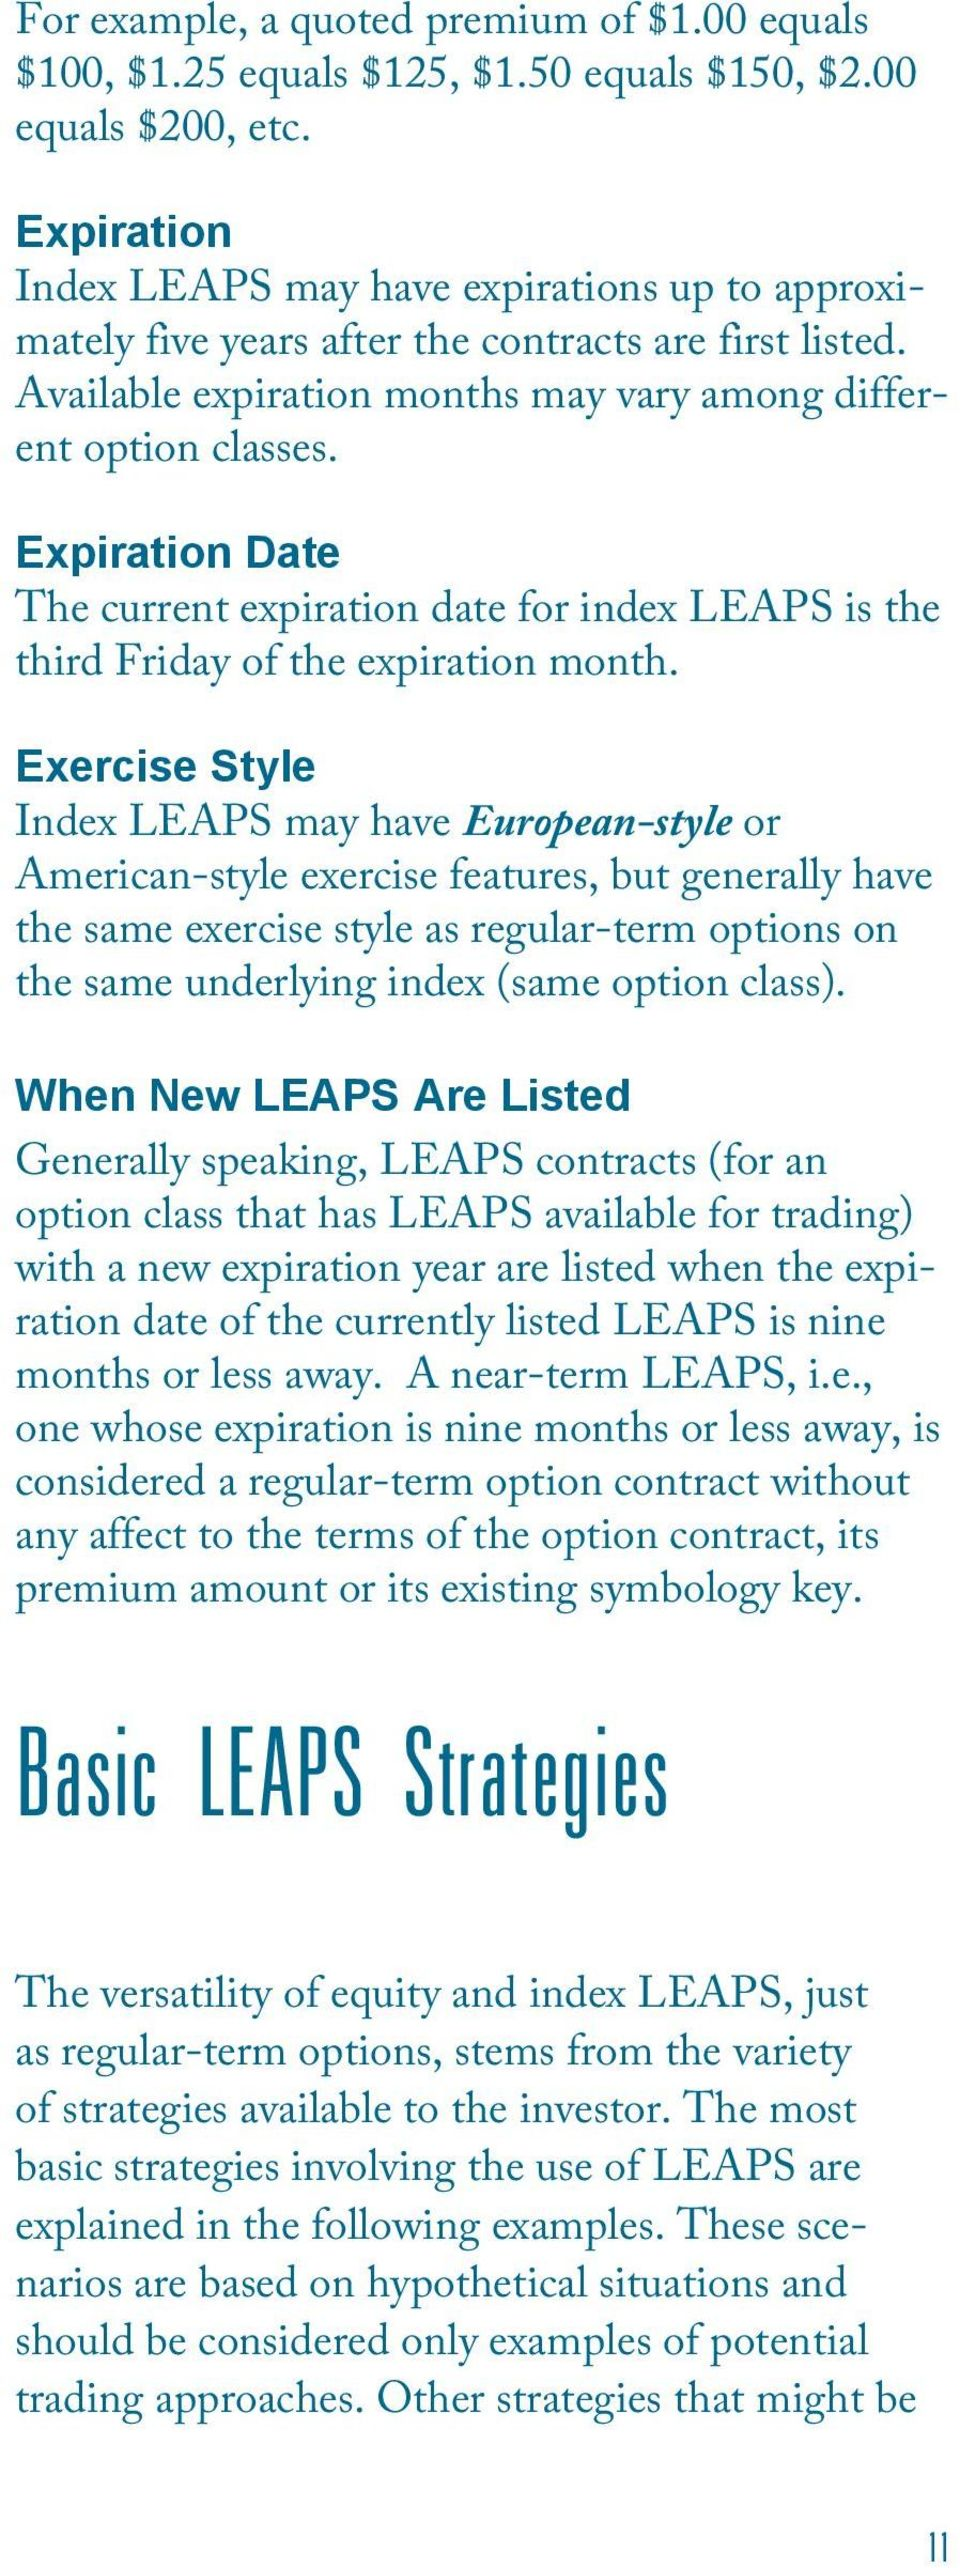 Expiration Date The current expiration date for index LEAPS is the third Friday of the expiration month.